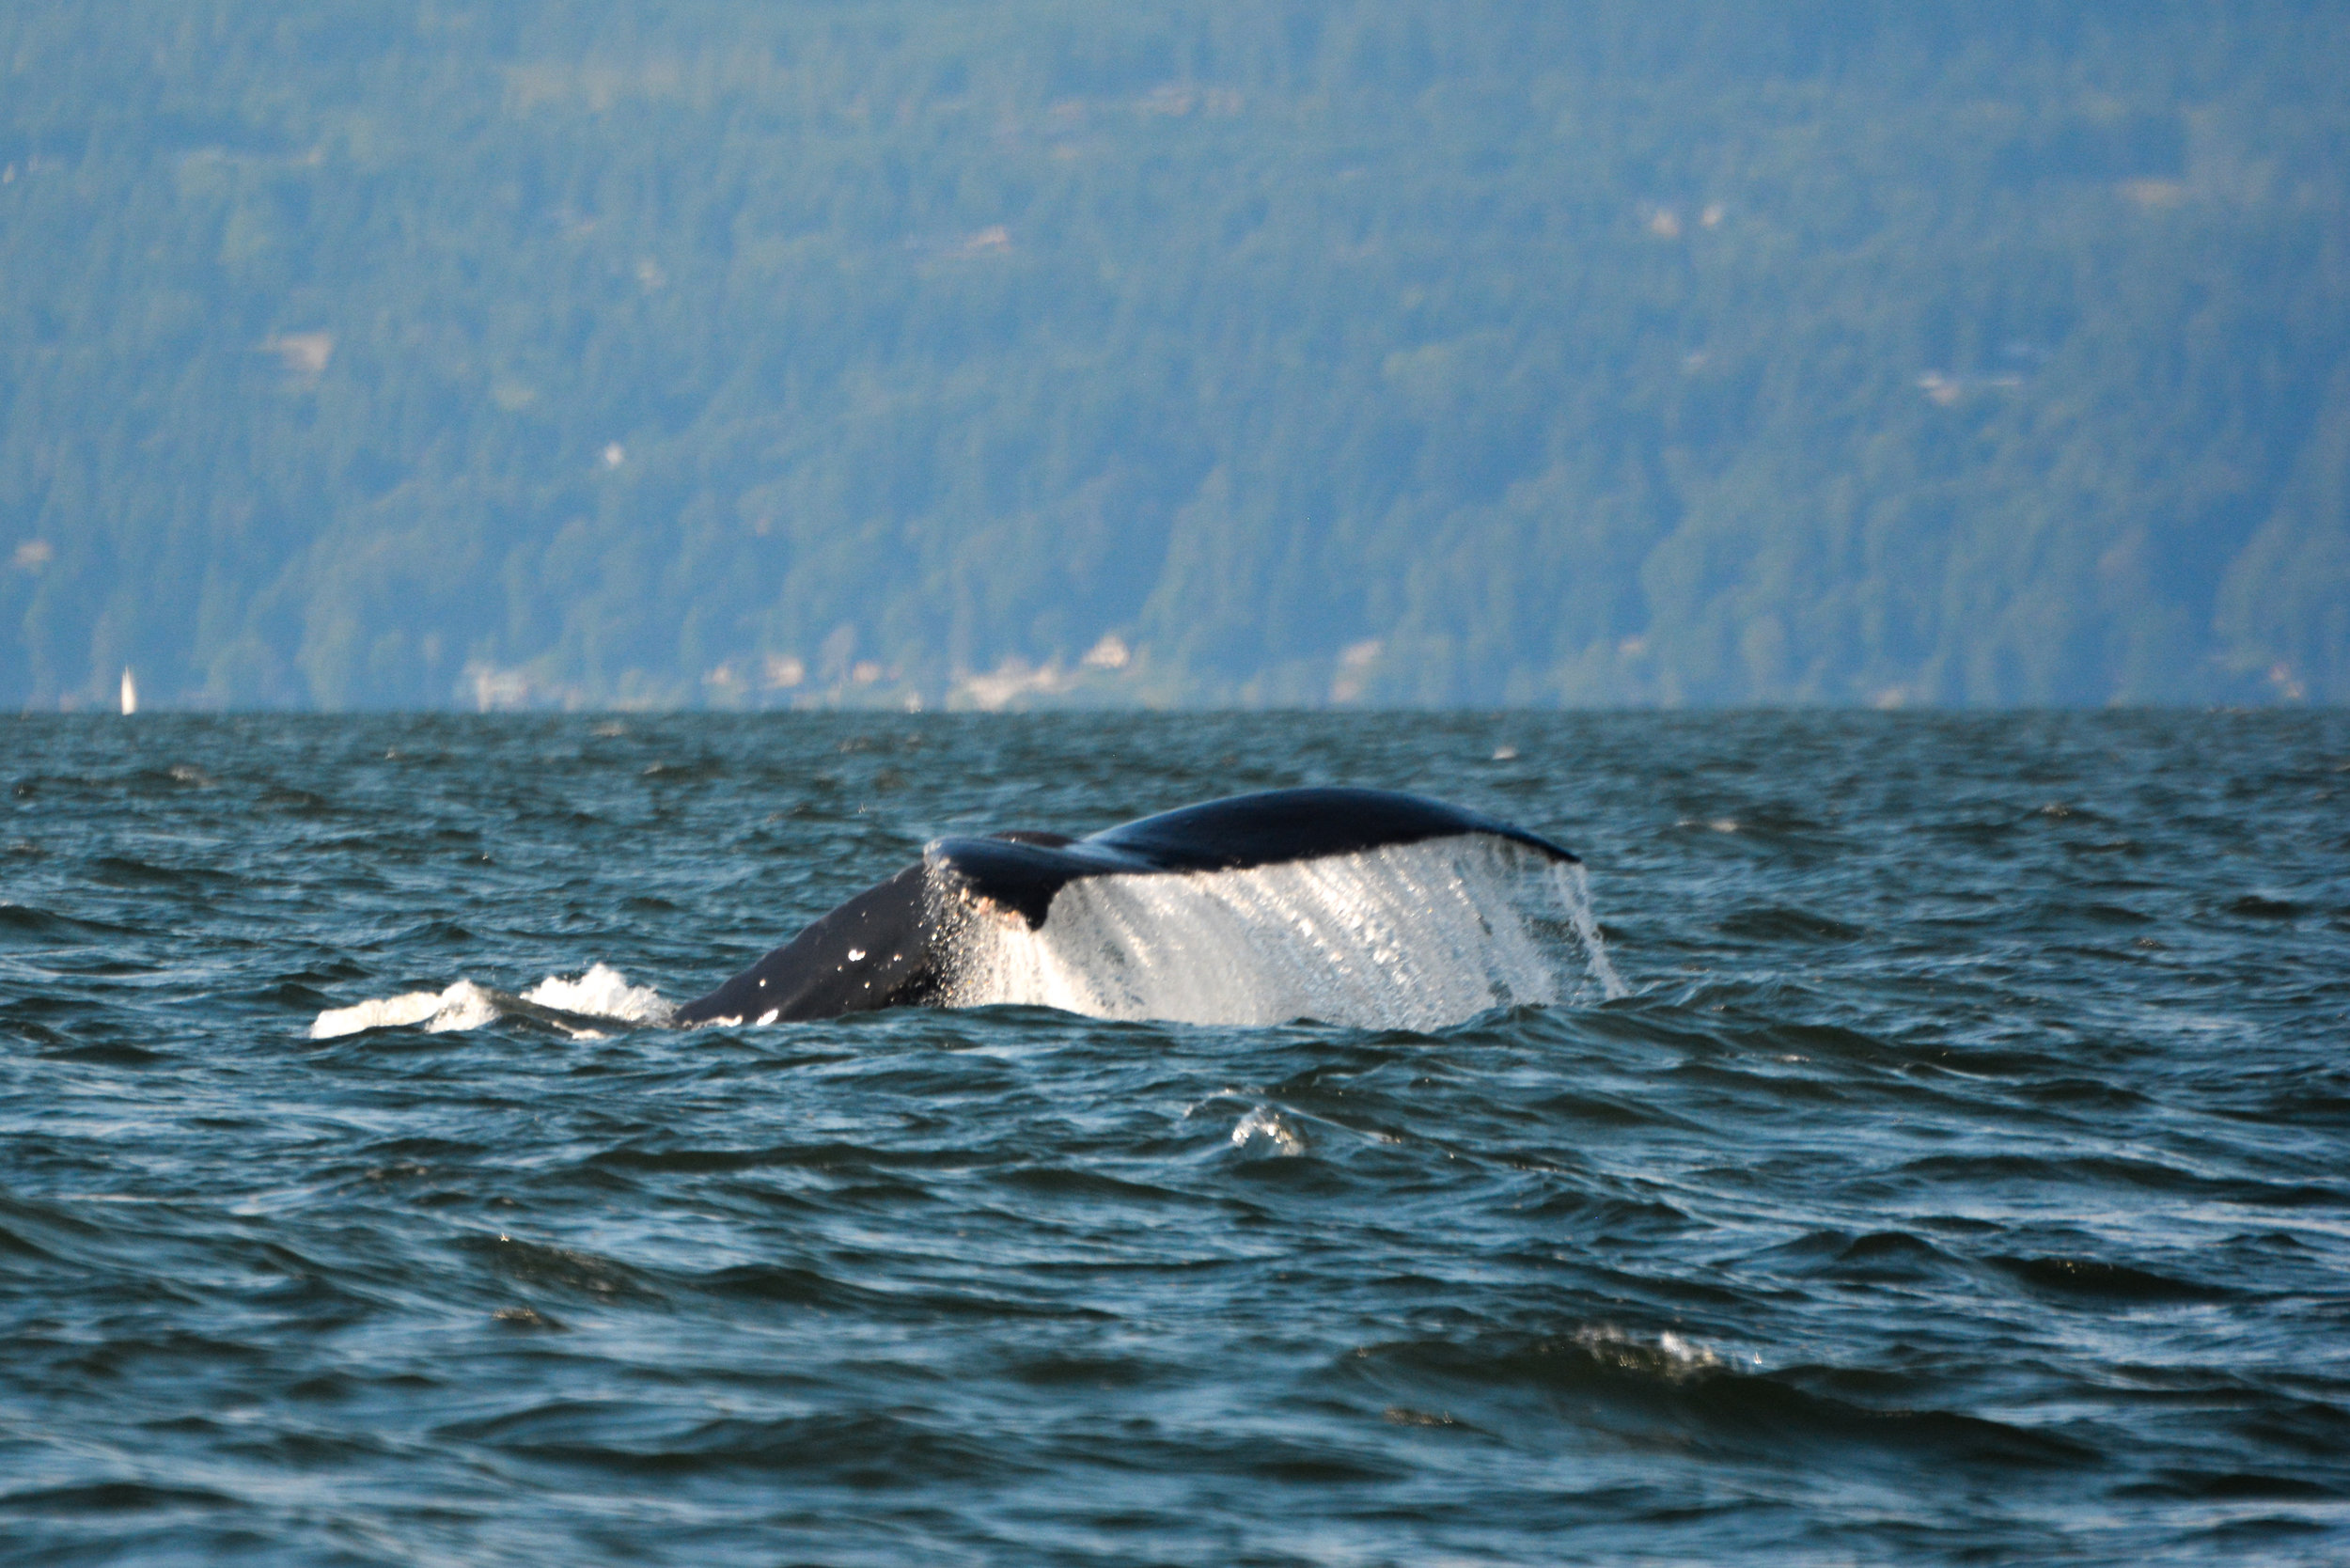 Yogi the humpback with his huge fluke coming up out of the water. Photo by Alanna Vivani